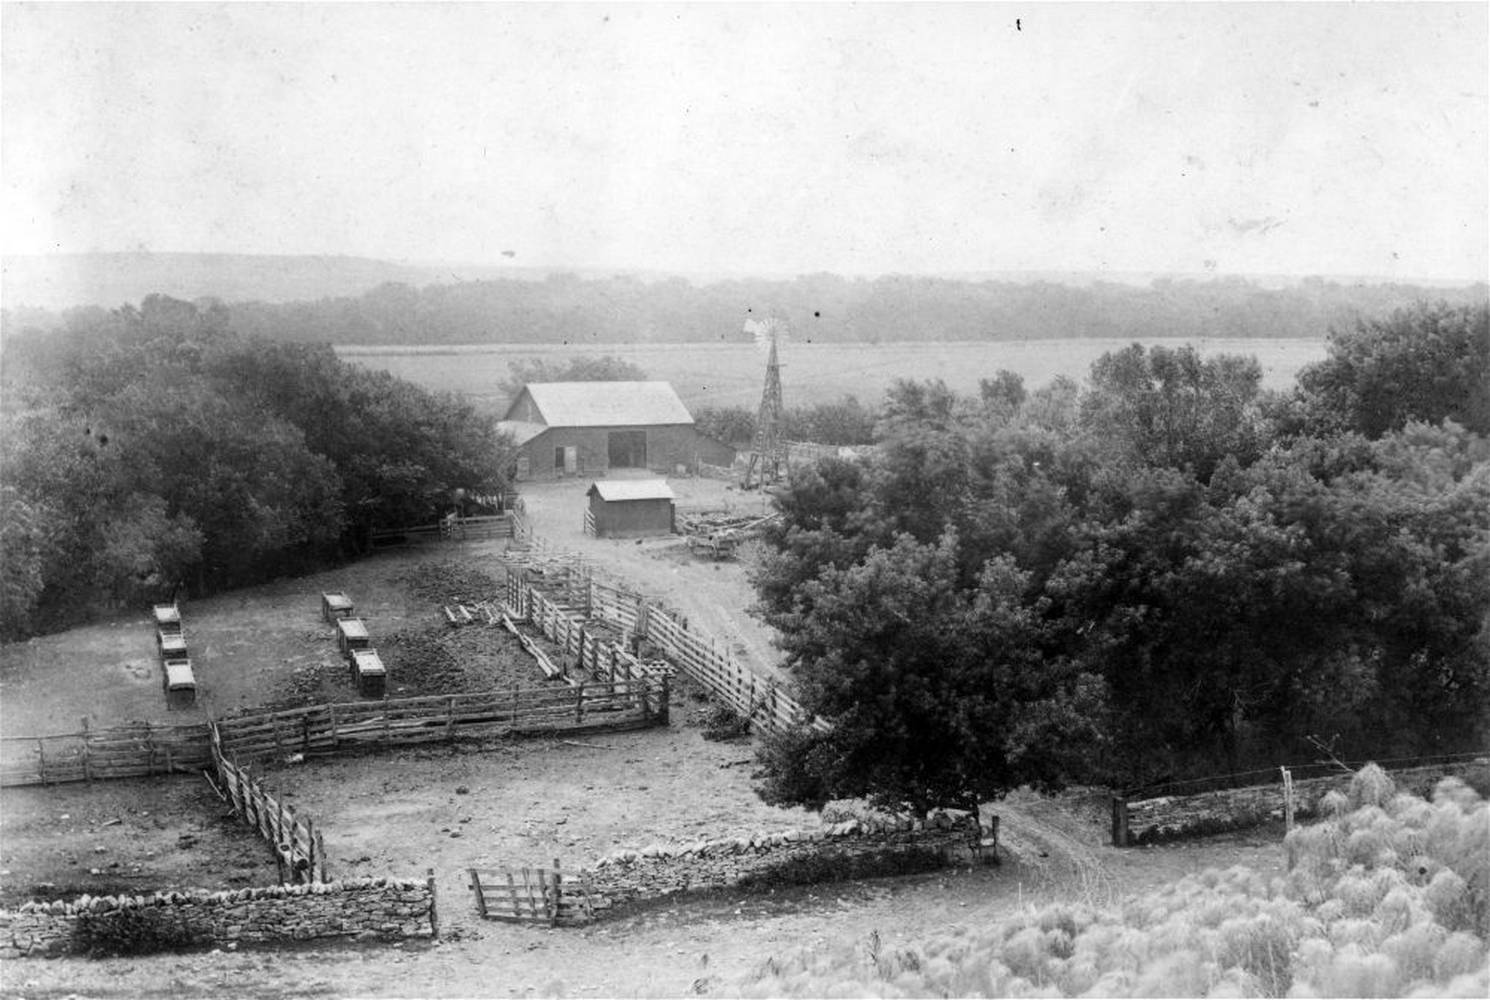 A high view of the ranch site taken in 1902